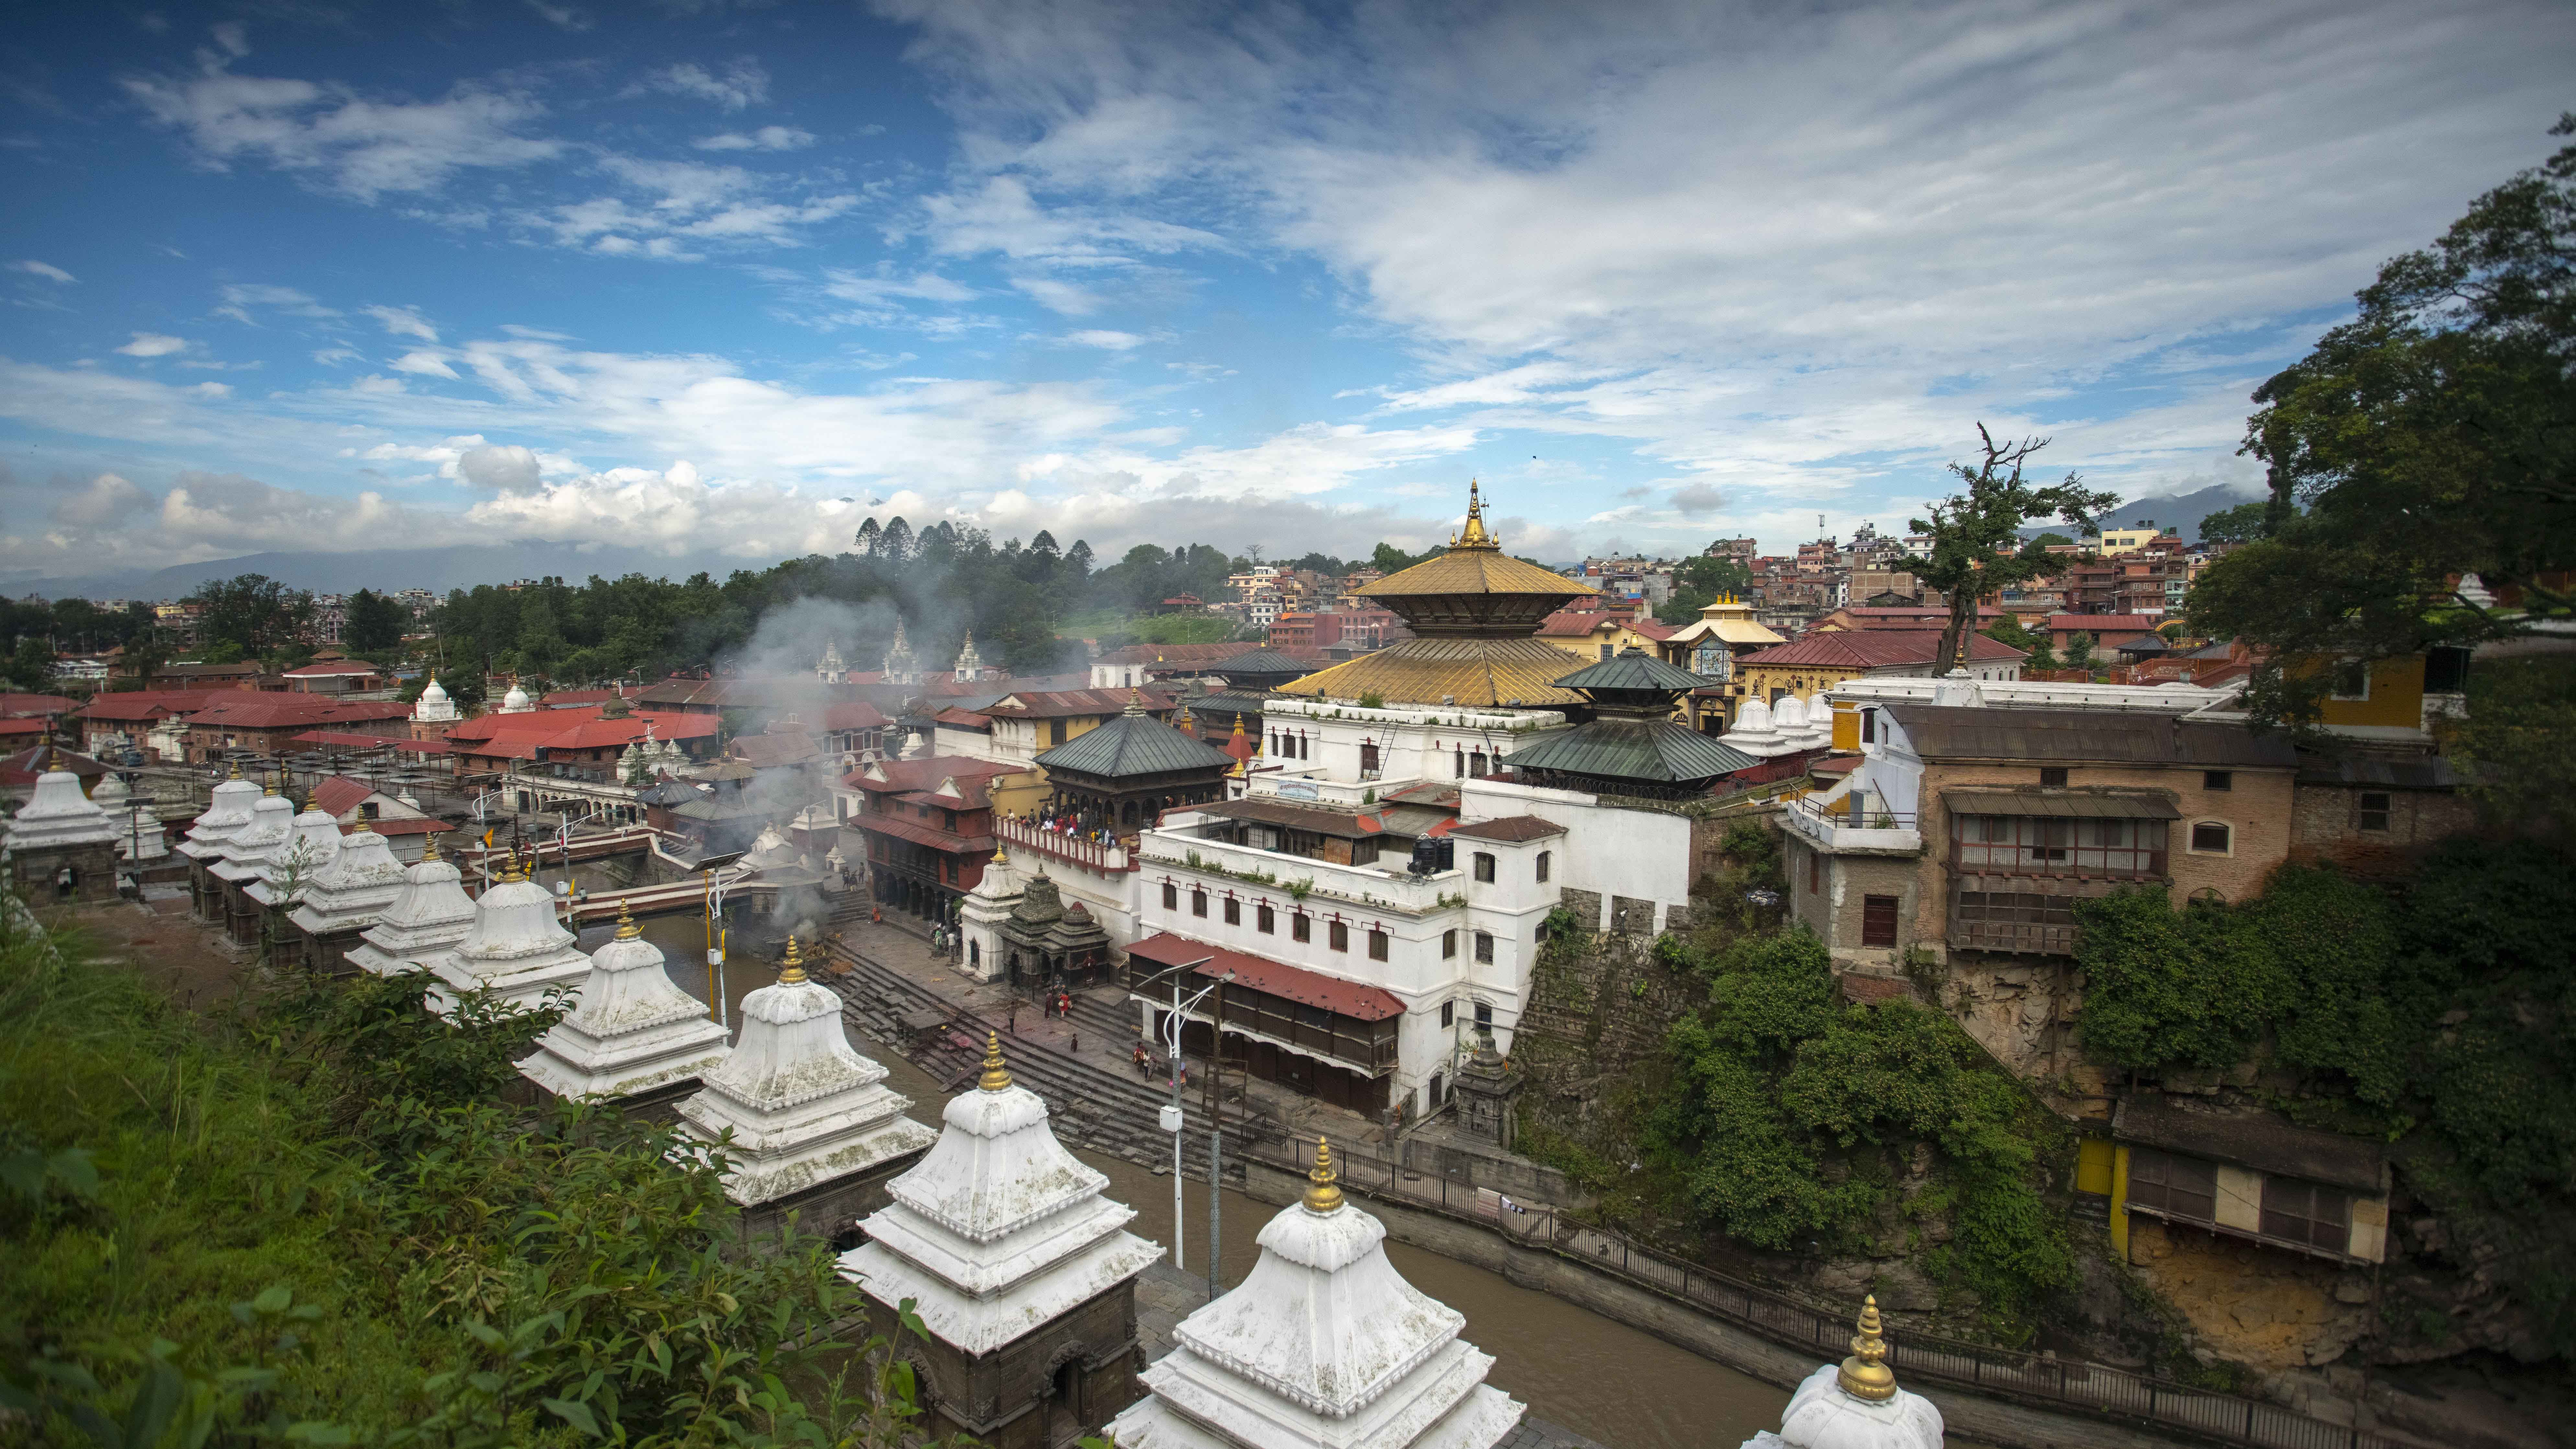 film-location-in-nepal-pashupatinath